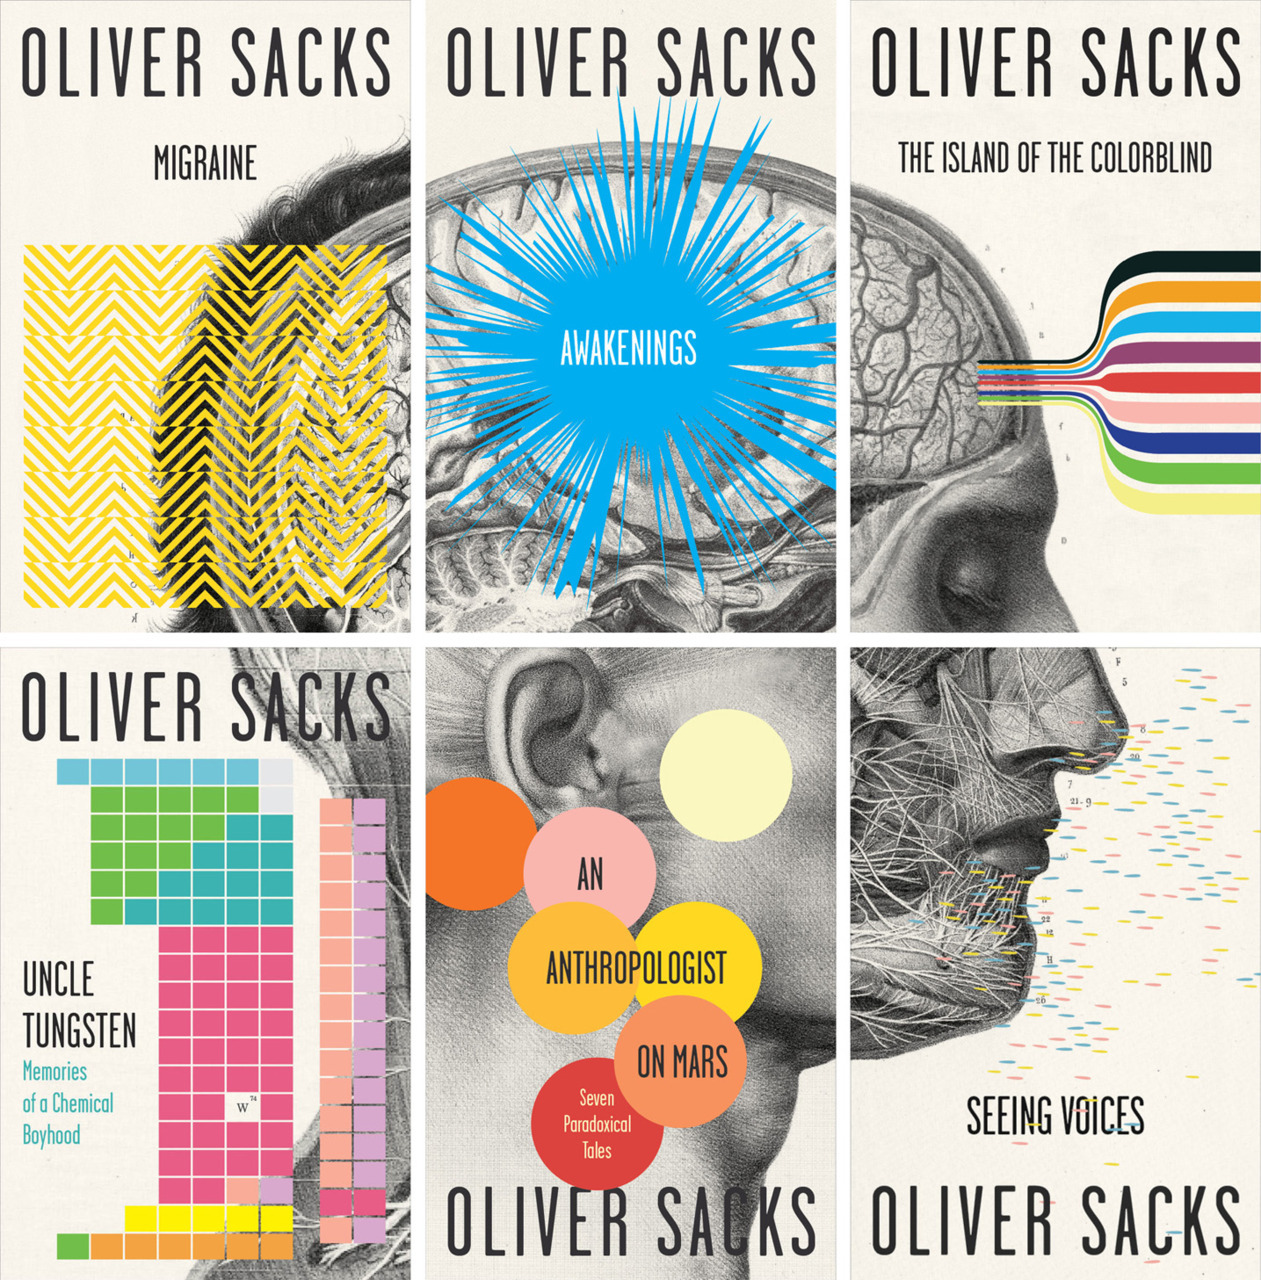 New cover designs for Oliver Sacks' books, by Carbon Web. (Via The Beautiful Brain)